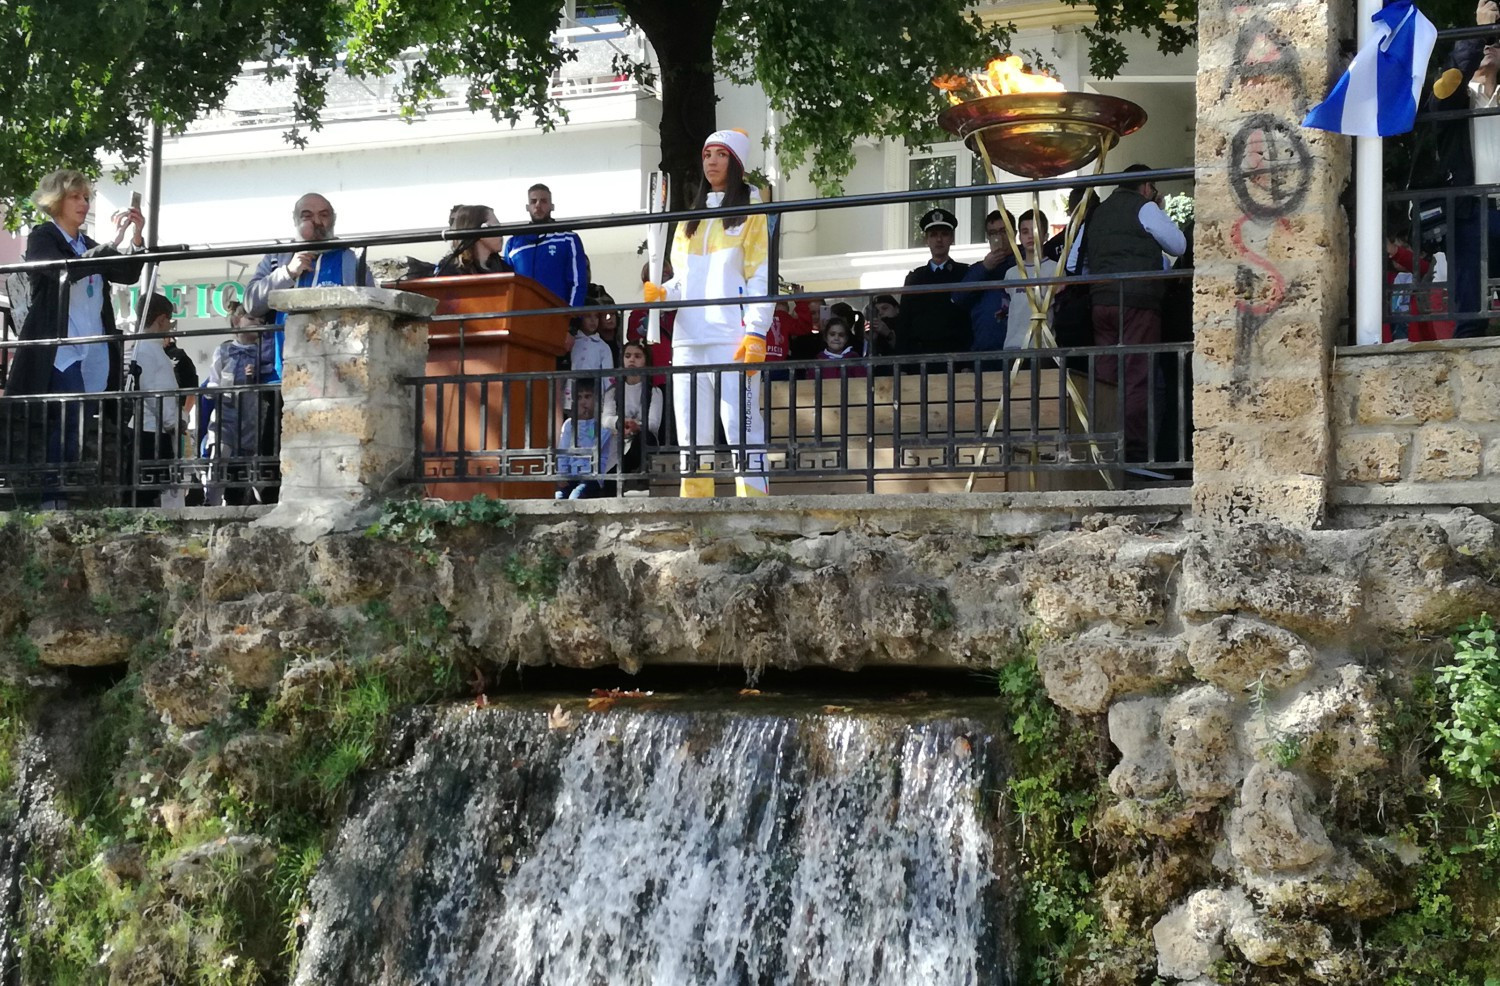 A spectacular waterfall at Edessa has been one of the highlights of the Olympic Torch Relay ©HOC